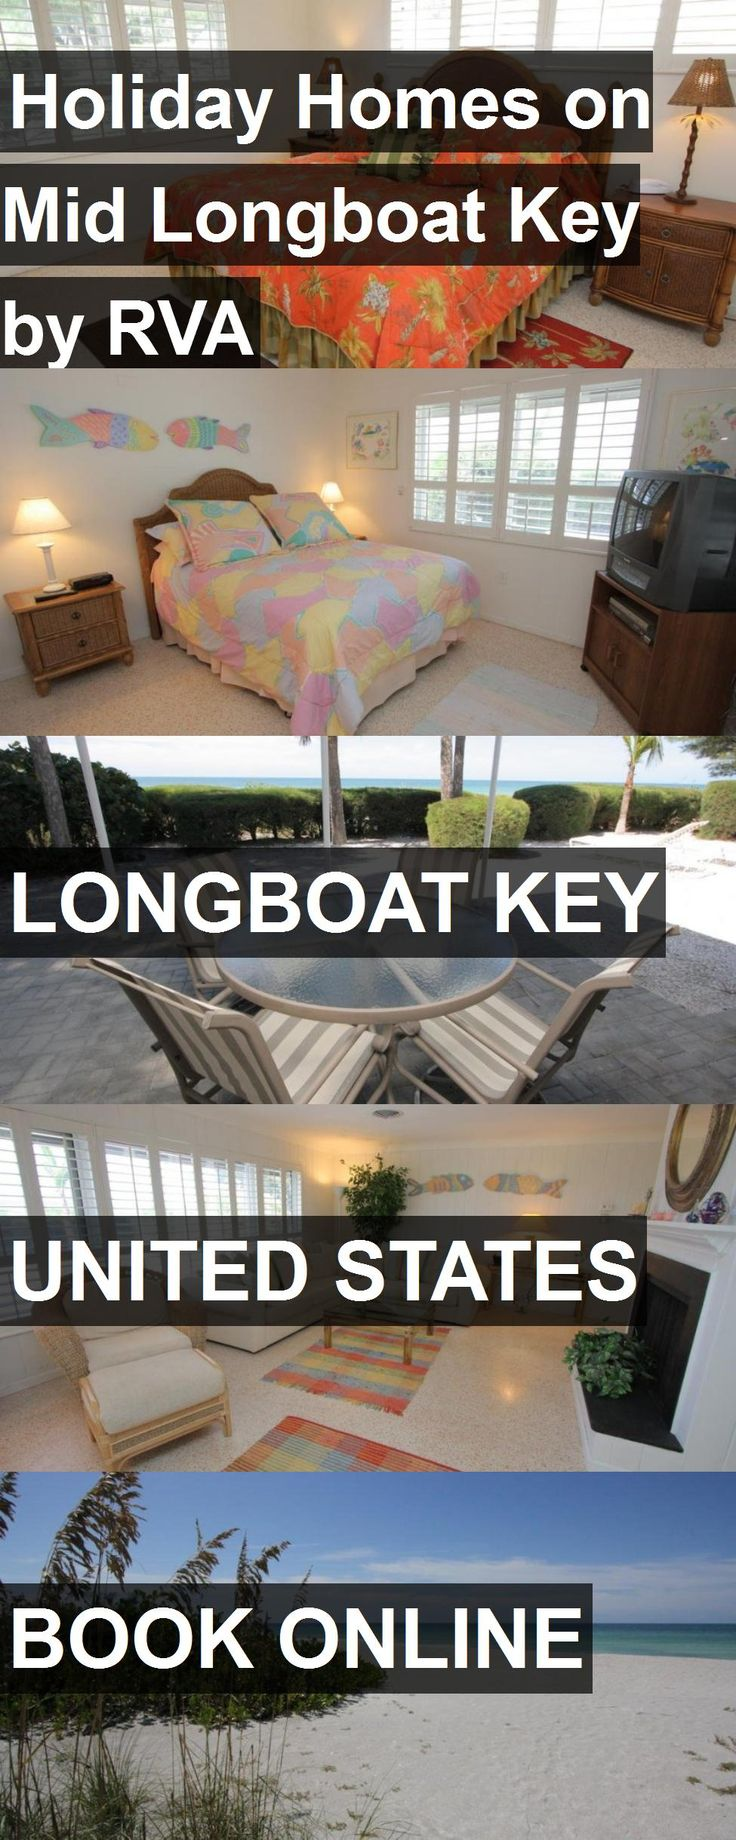 Us Map With State Abbreviations And Time Zones%0A Hotel Holiday Homes on Mid Longboat Key by RVA in Longboat Key  United  States